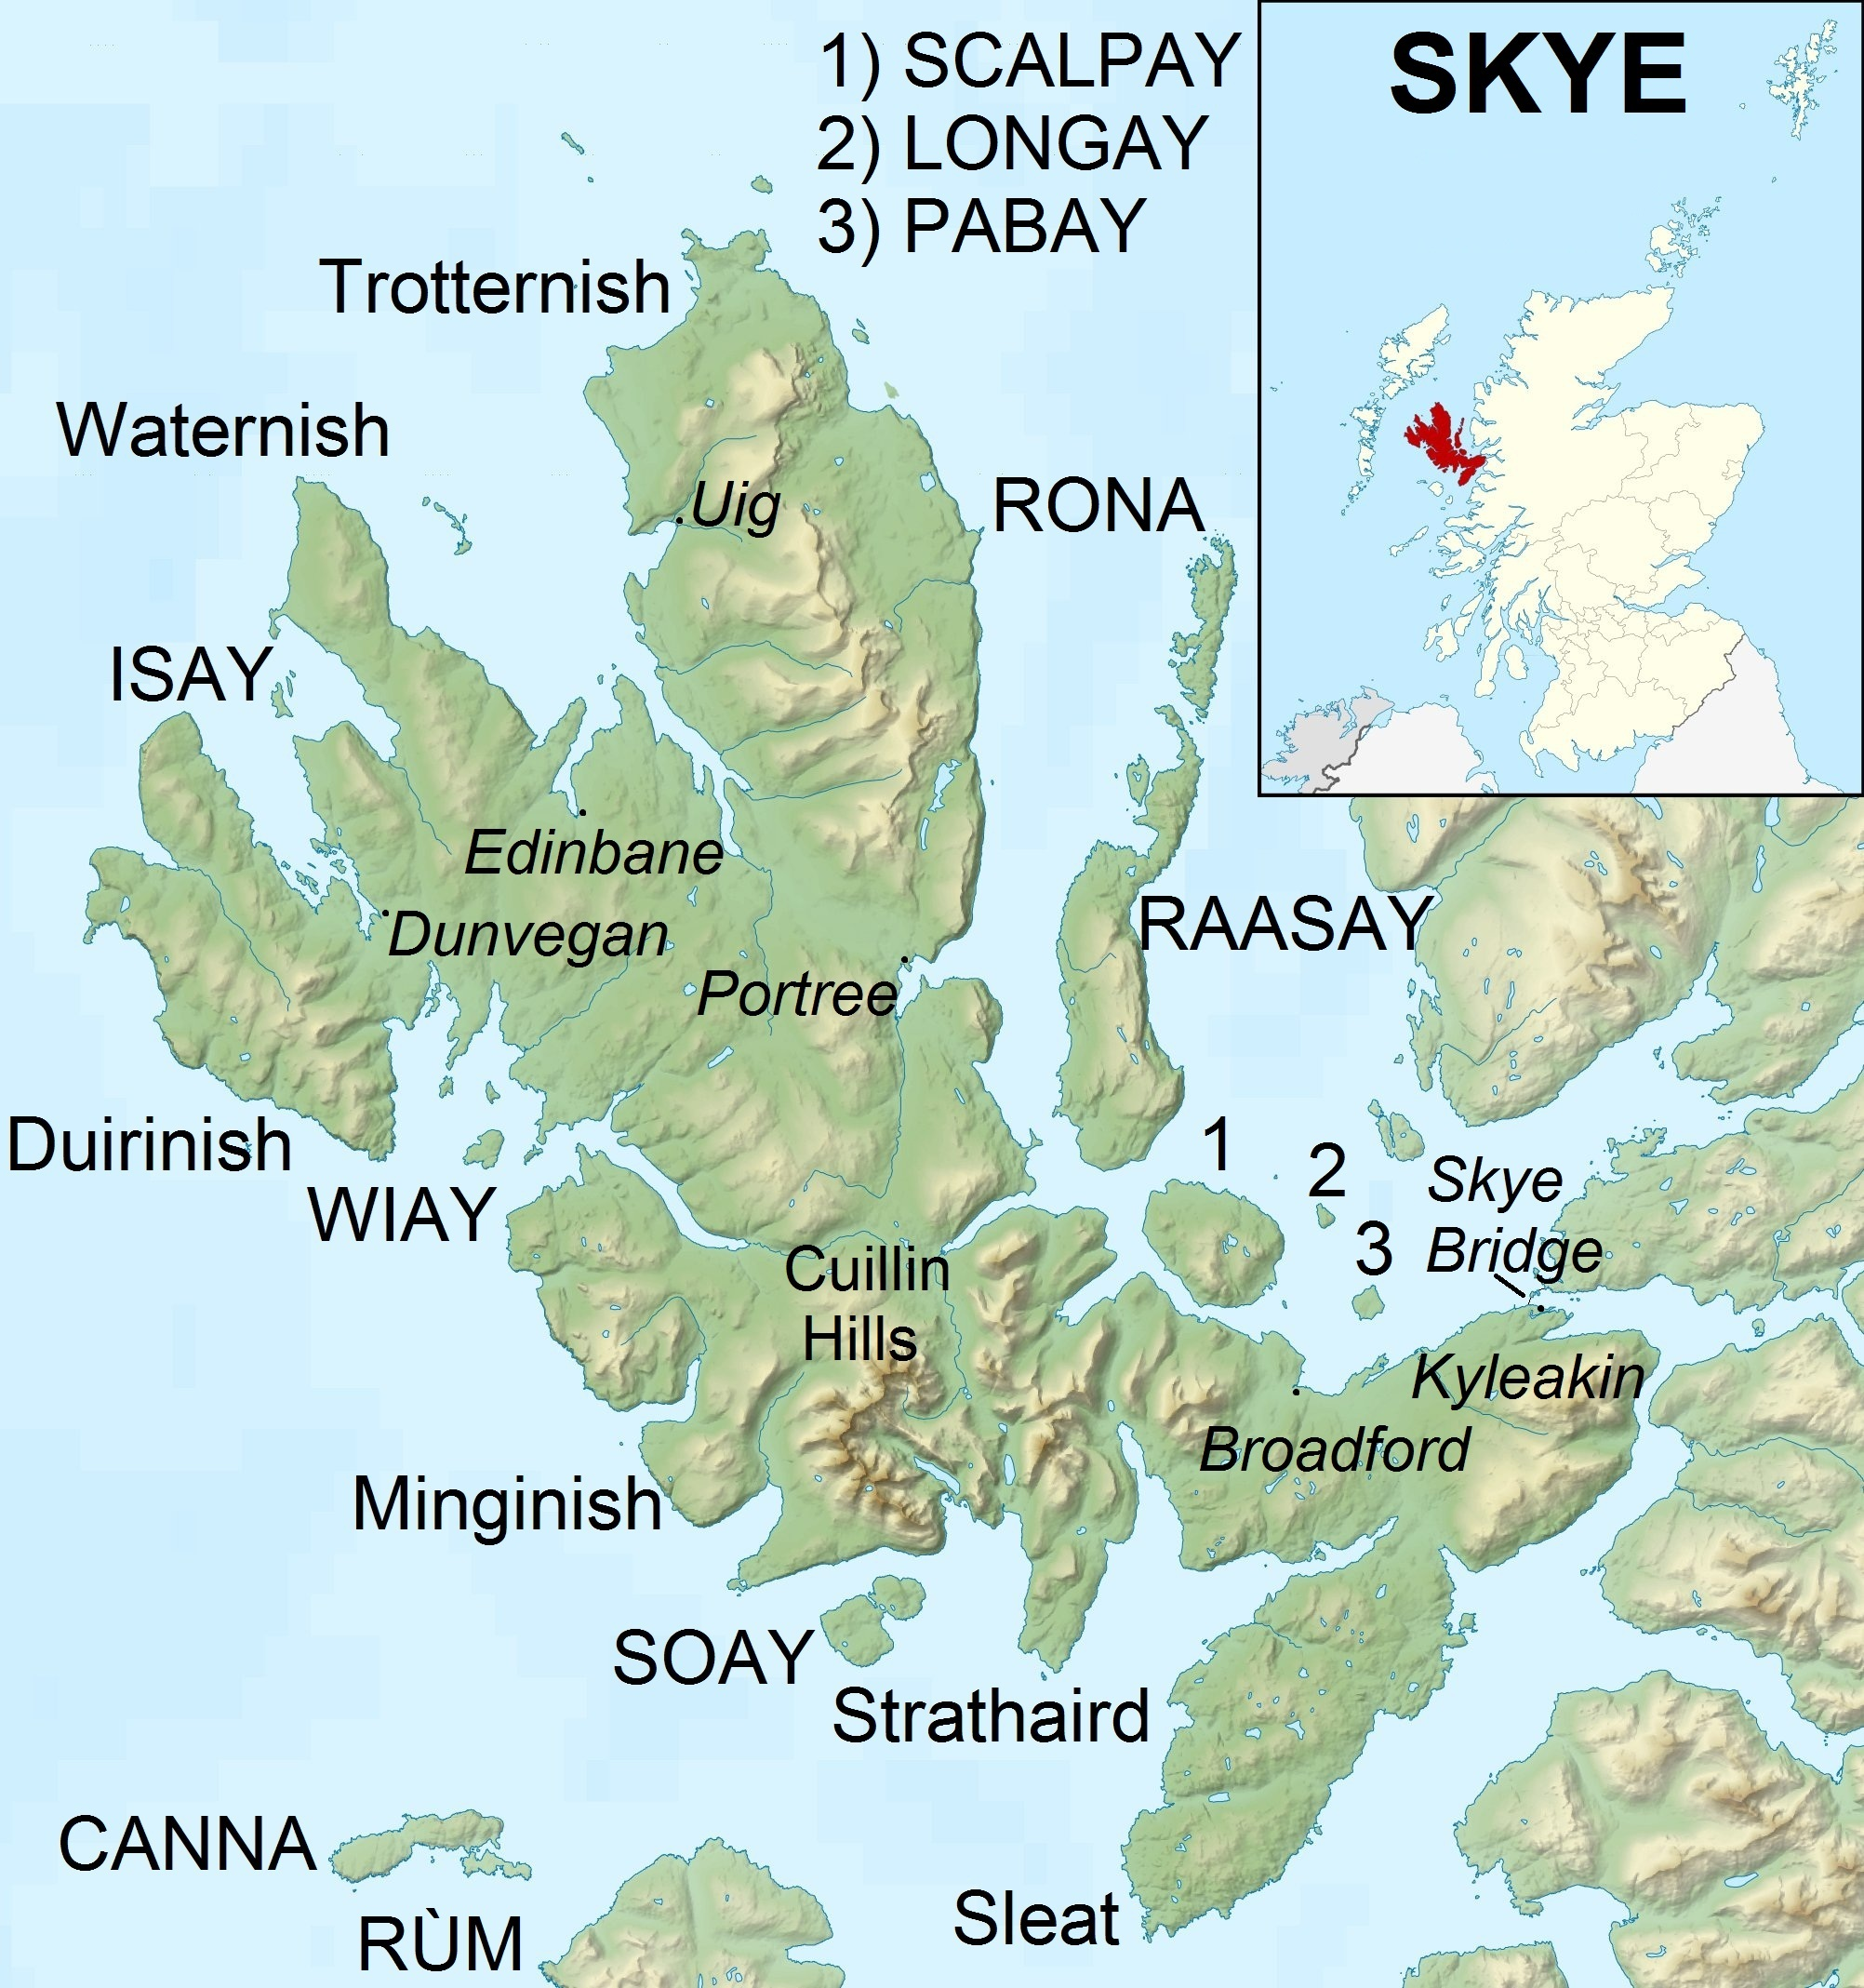 Map showing the location of Soay. It is a small island directly south of the Cullin Hills on the Isle of Skye